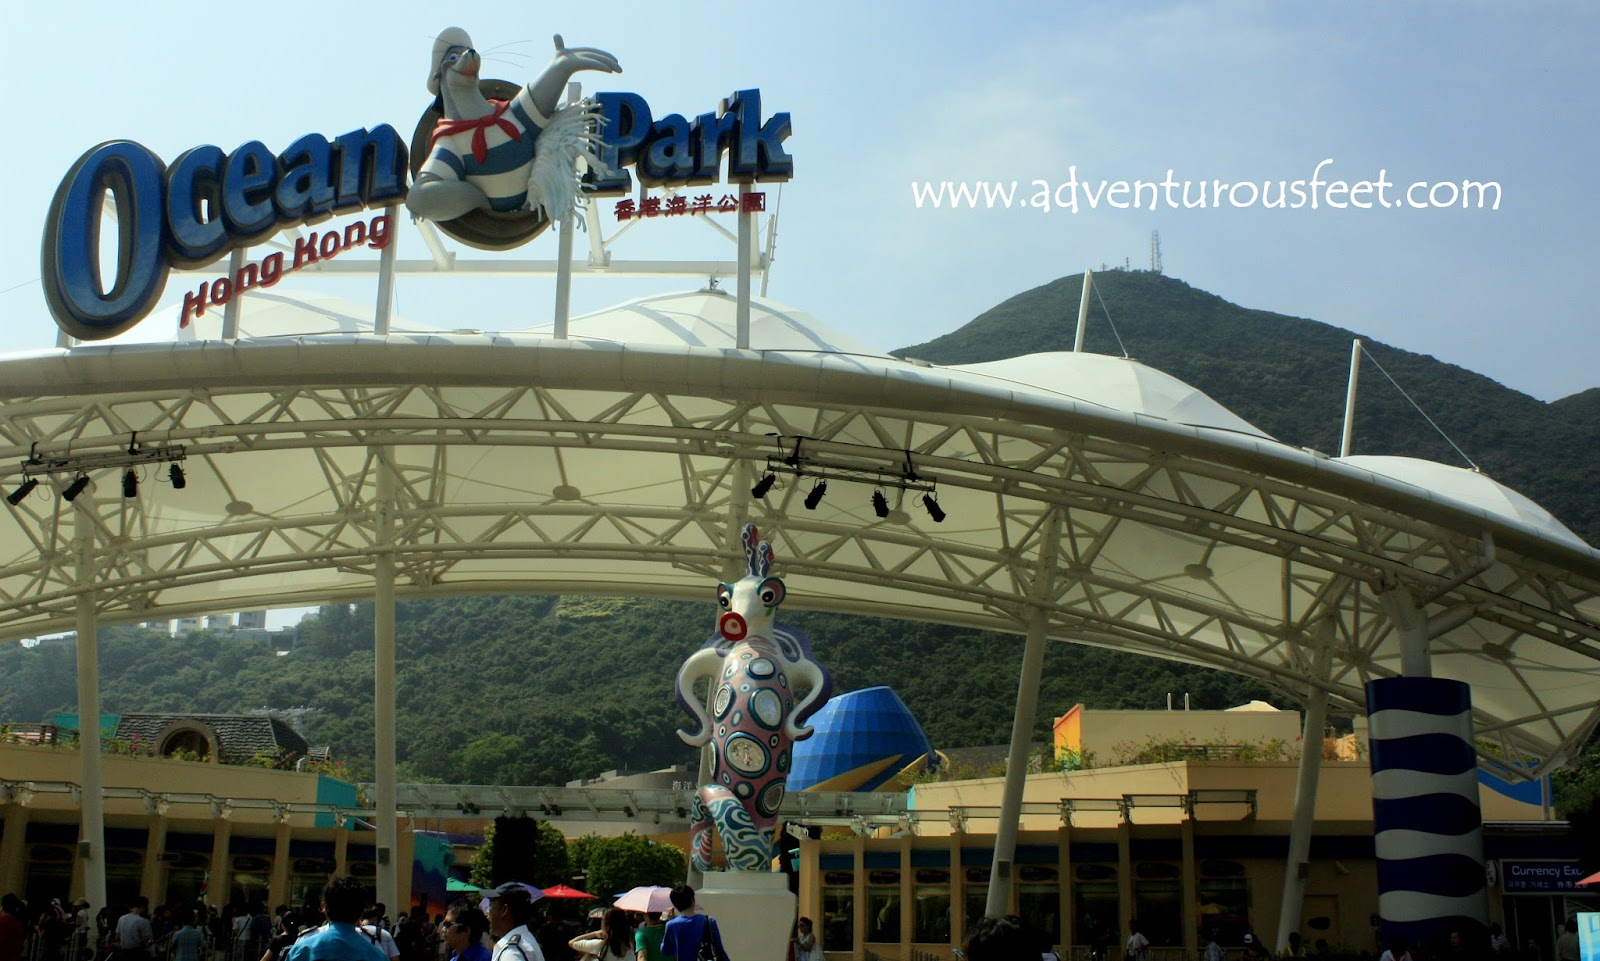 Adventurous feet part 5 hong kong macau trip day 2 ocean park hong kongs ocean park is a lot bigger than hong kong disneyland aside from seeing different acquatic animals there are so many extreme rides to choose gumiabroncs Image collections